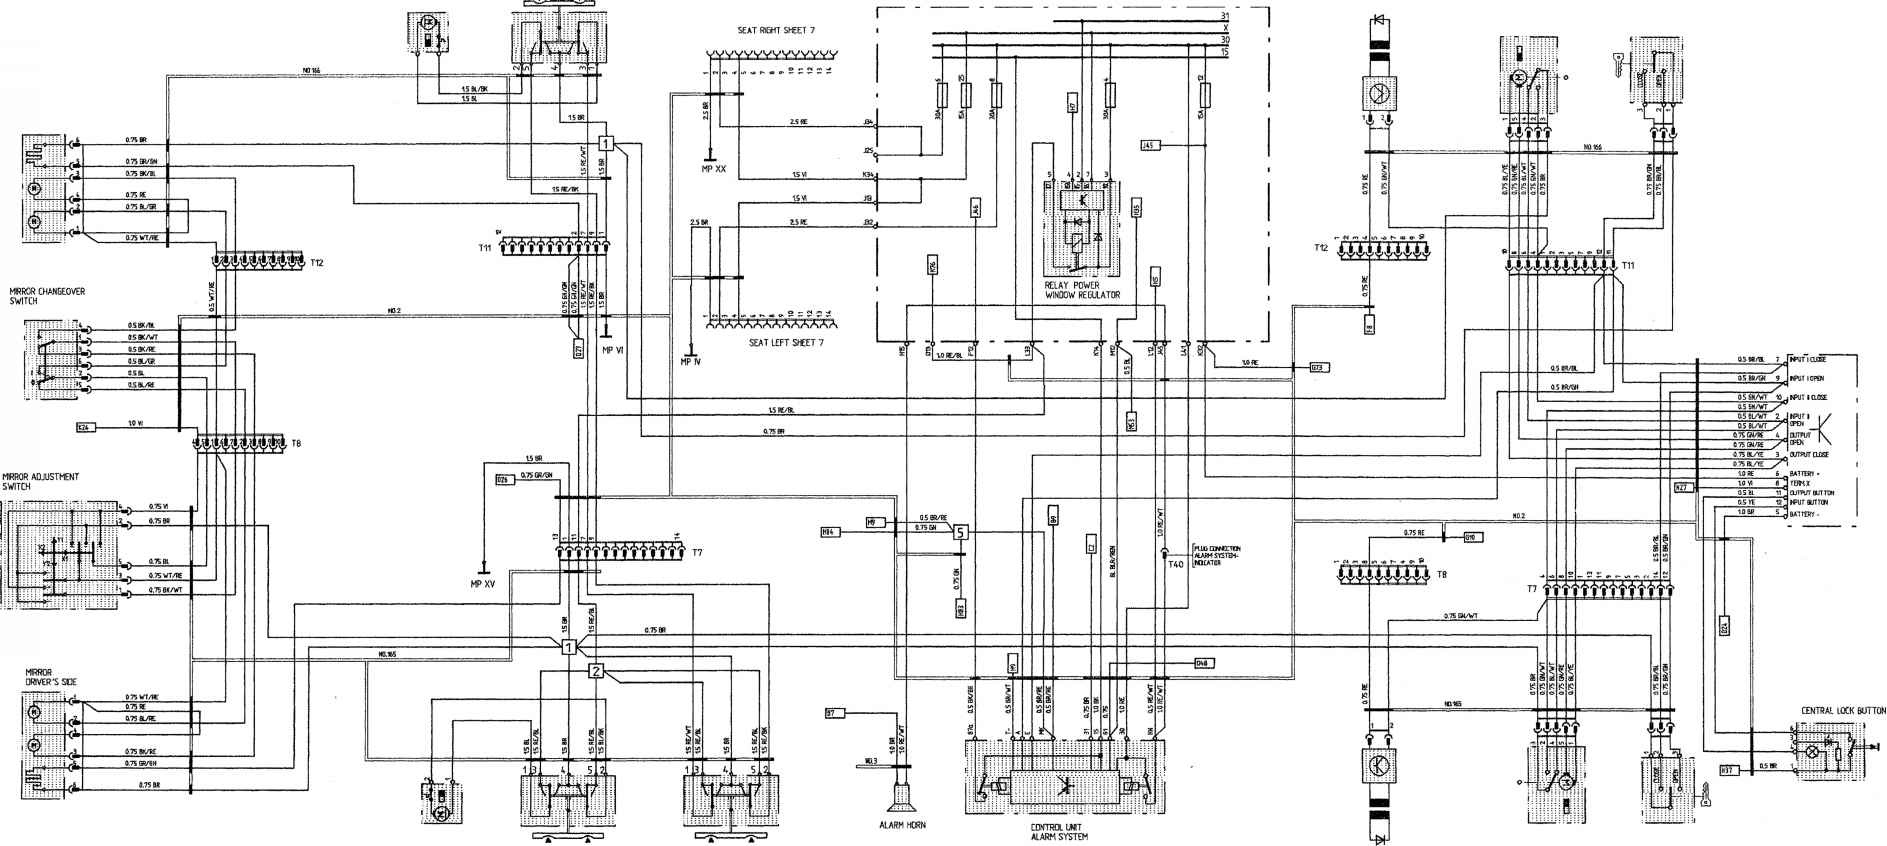 hight resolution of porsche 964 dme wiring diagram wiring library porsche 964 dme wiring diagram porsche 964 wiring diagram